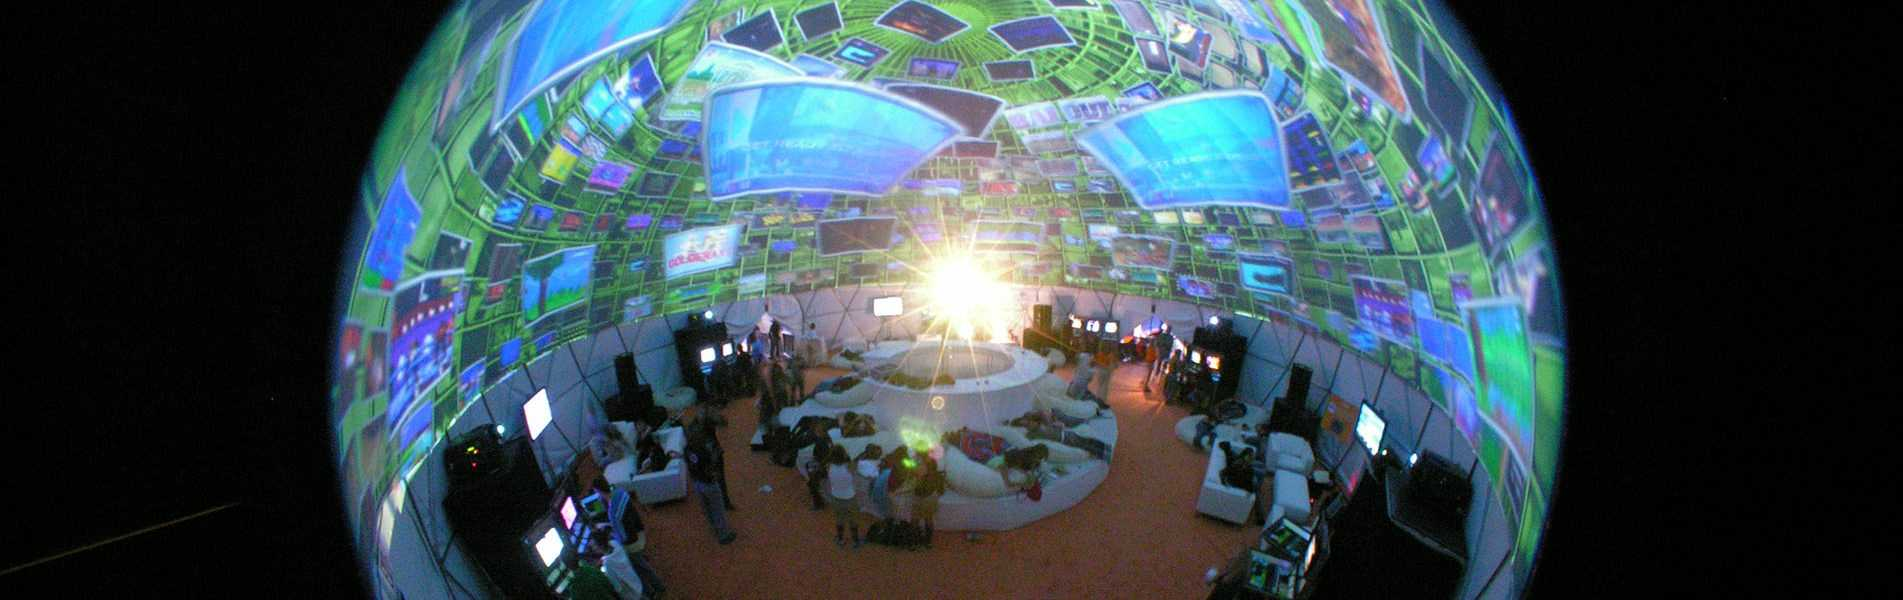 Game Tap Projection Dome